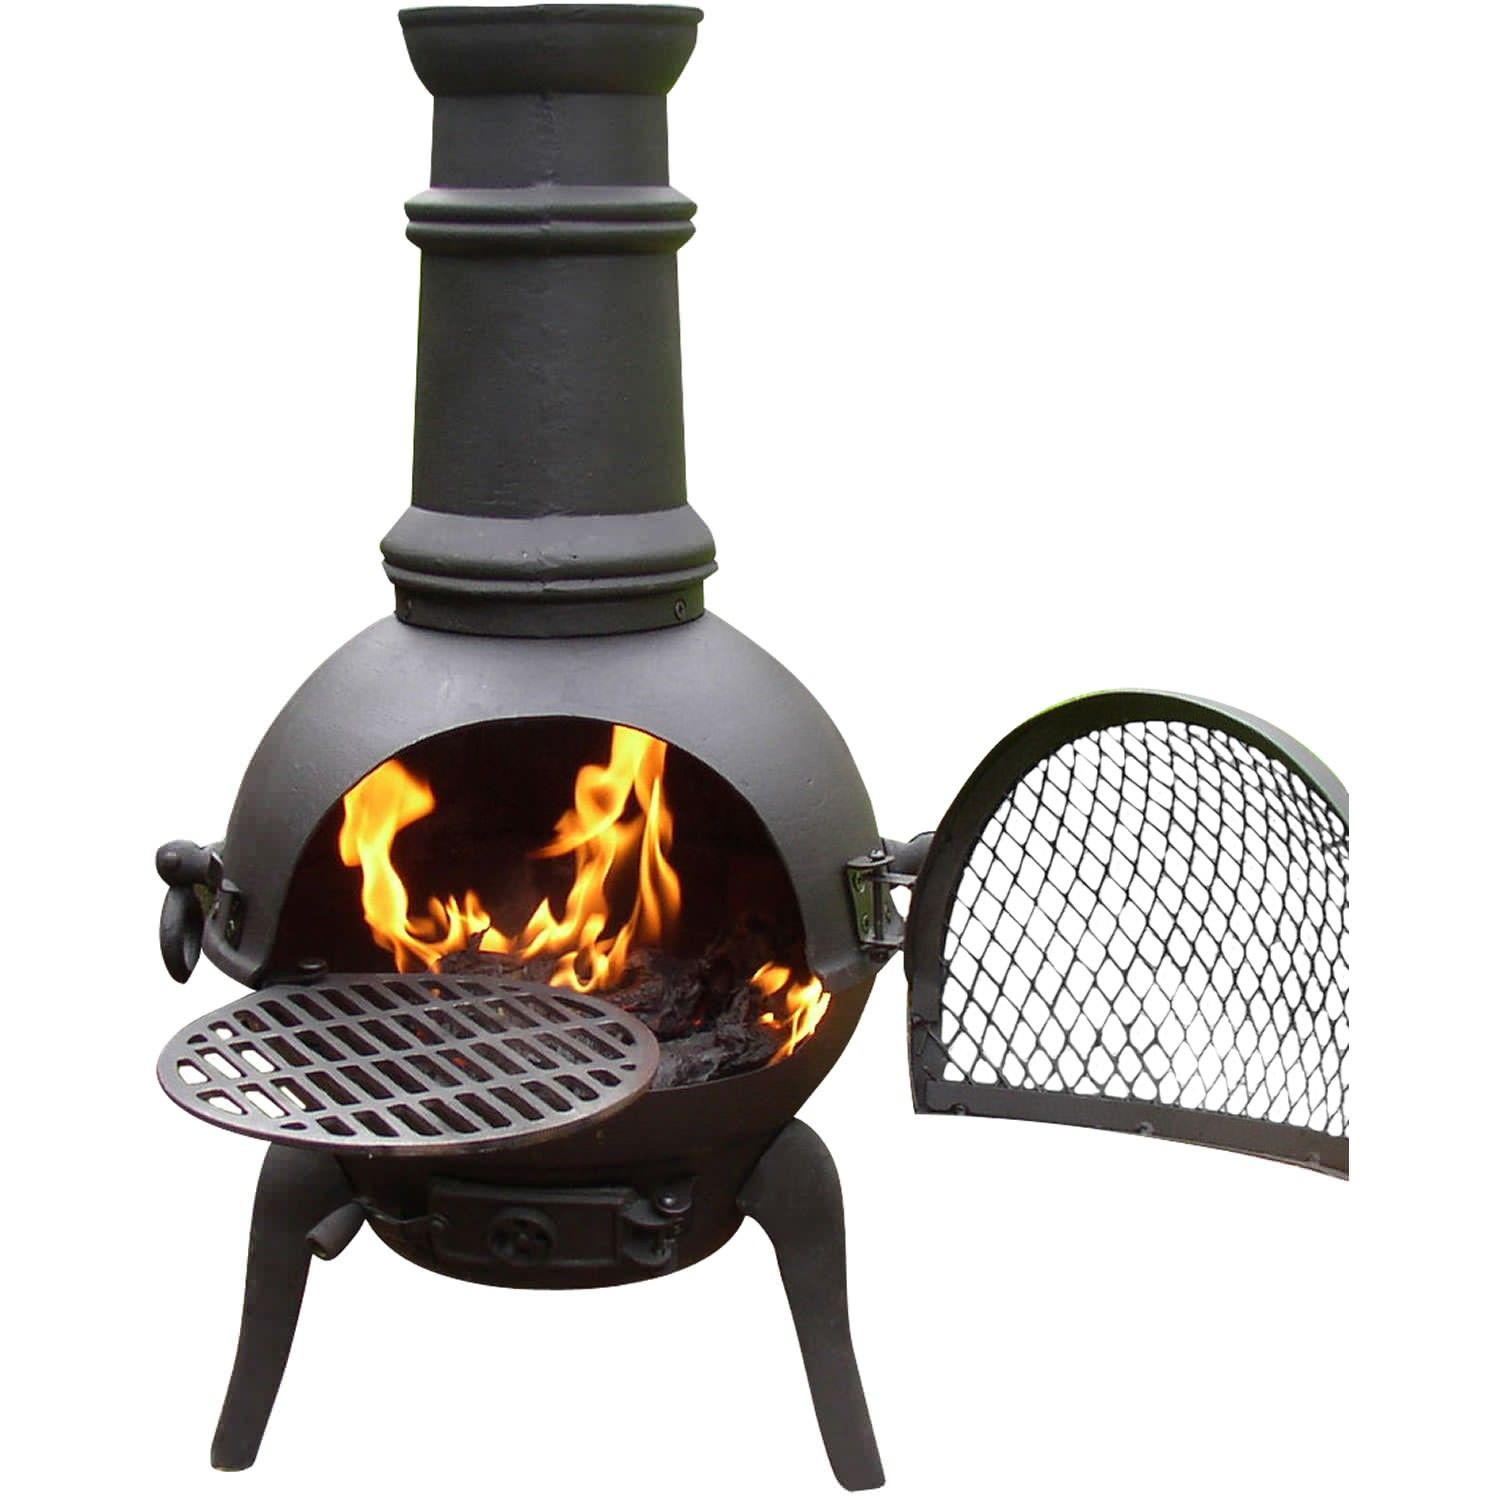 Captivating Cast Iron Chiminea Small Bronze In Unique Design For Patio Heater Ideas